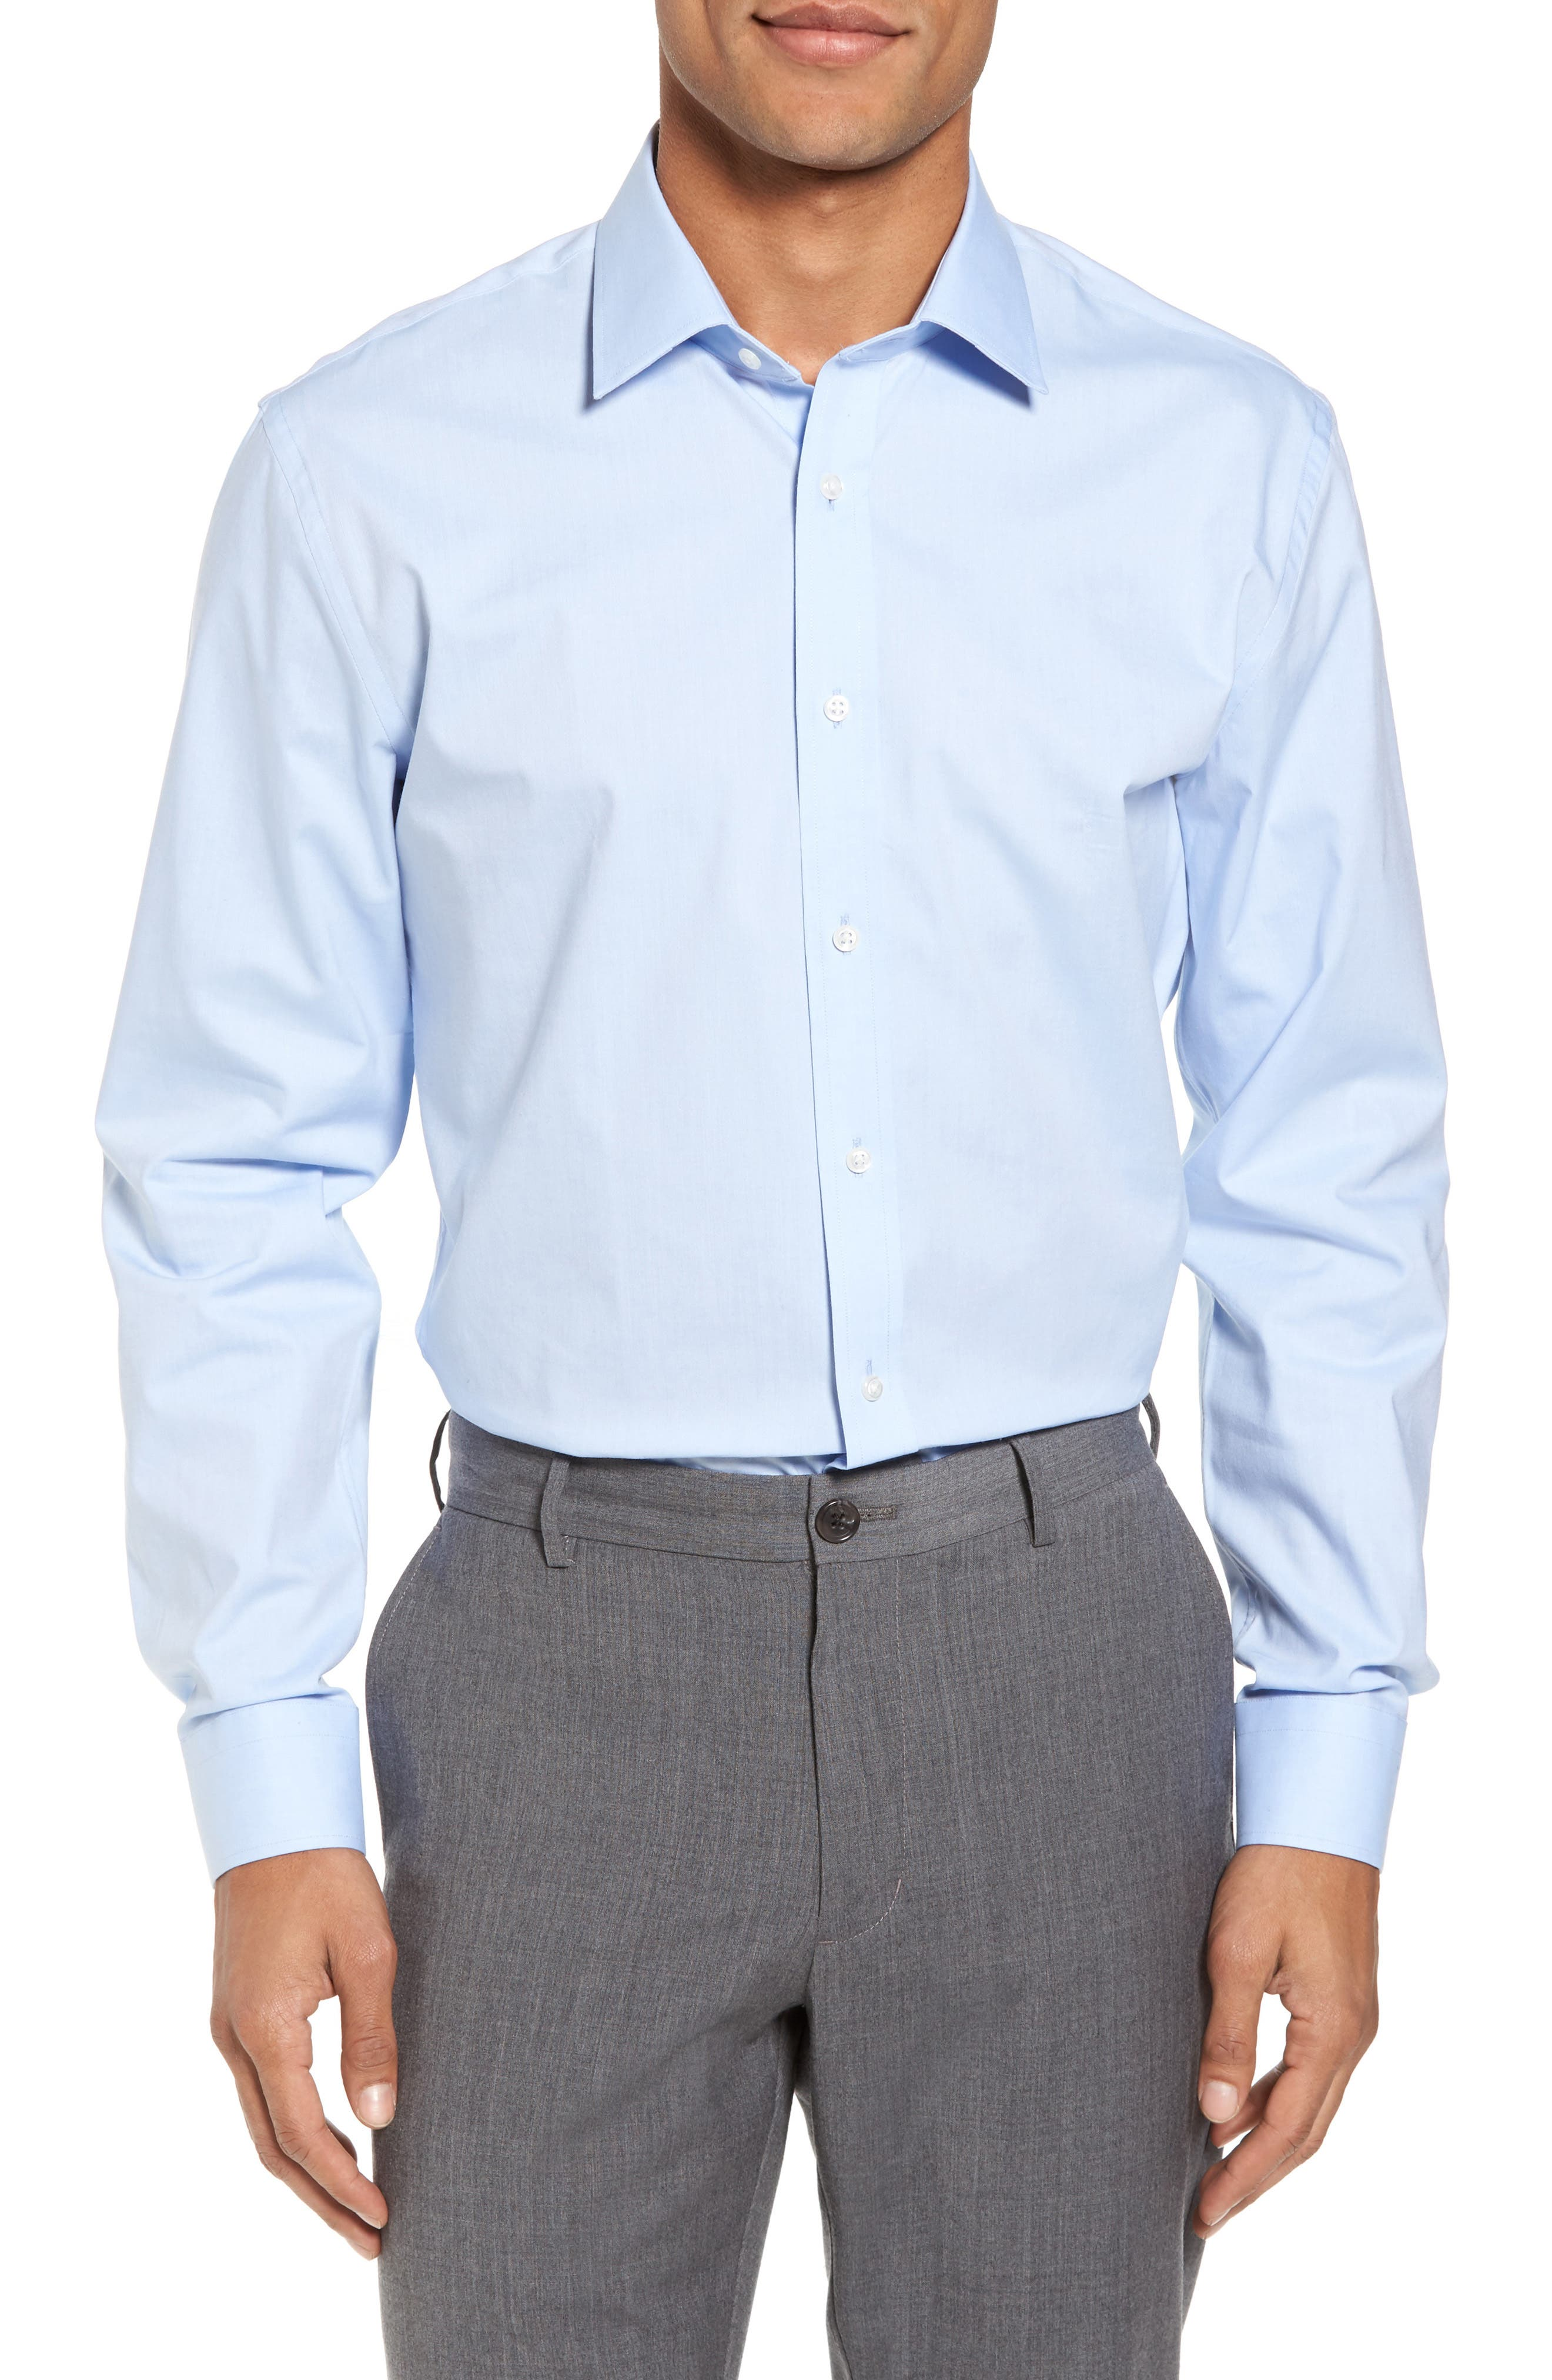 Tech-Smart Trim Fit Stretch Pinpoint Dress Shirt,                         Main,                         color, Blue Xenon